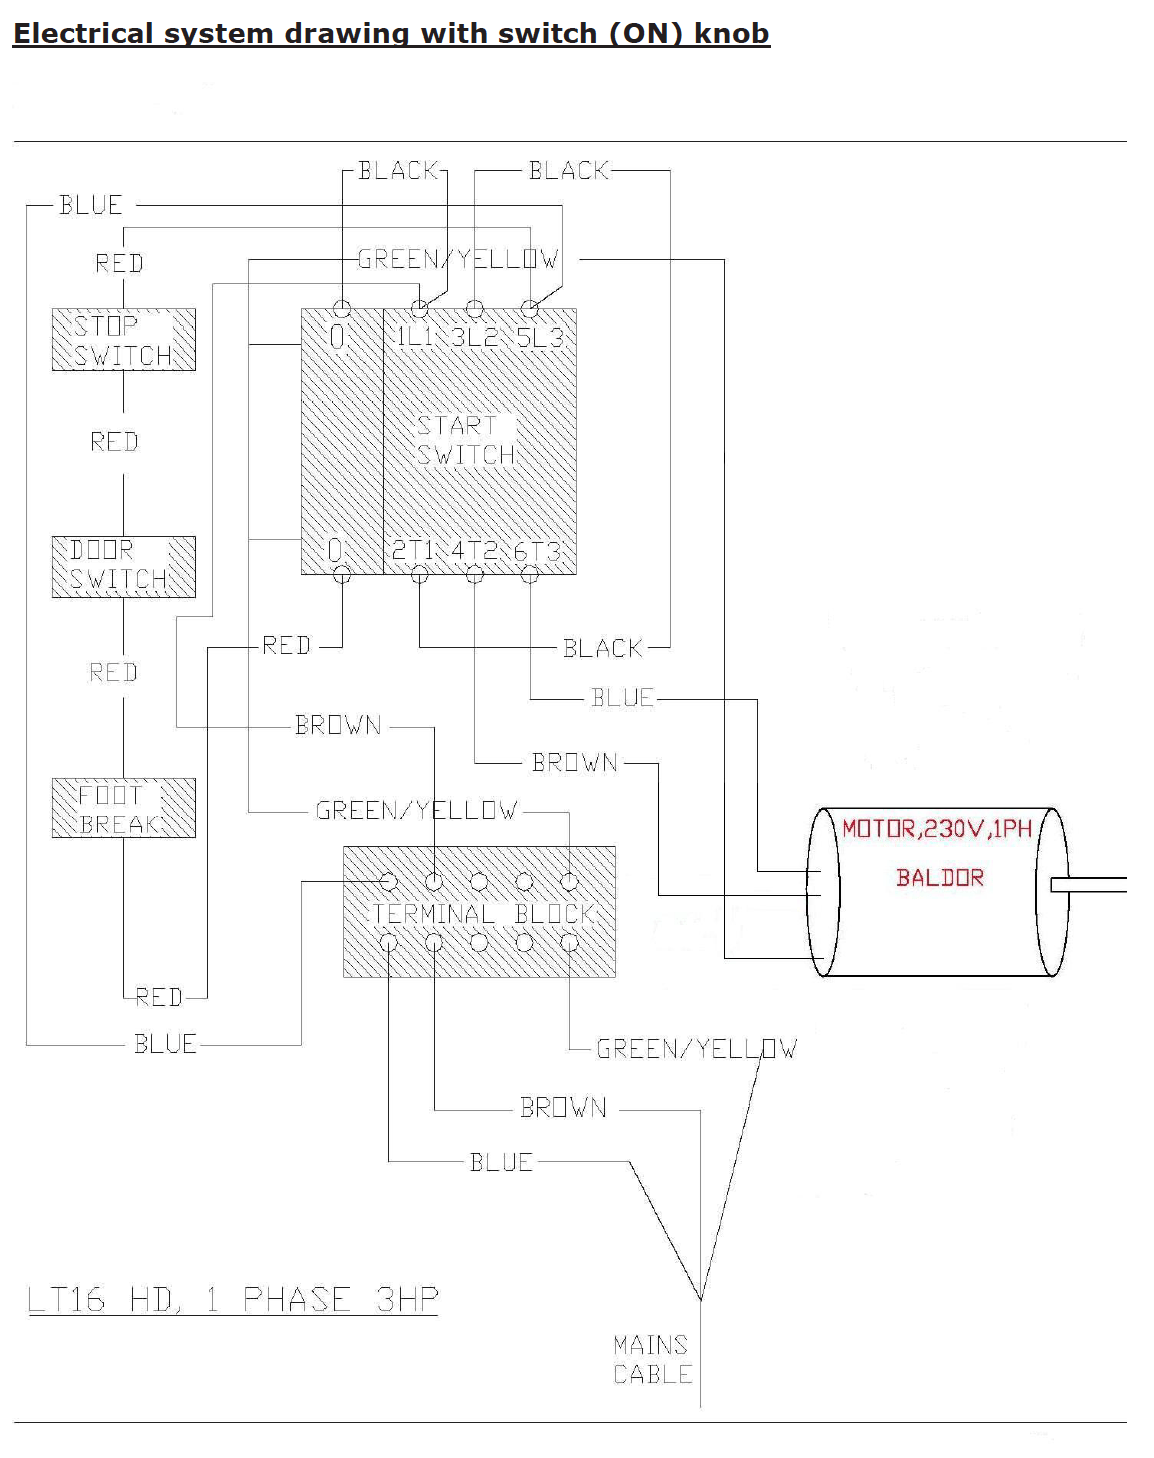 hight resolution of wiring diagram this is the breaker for my dryer this is one on which the bandsaw works the wire from it looks like 10awg at most